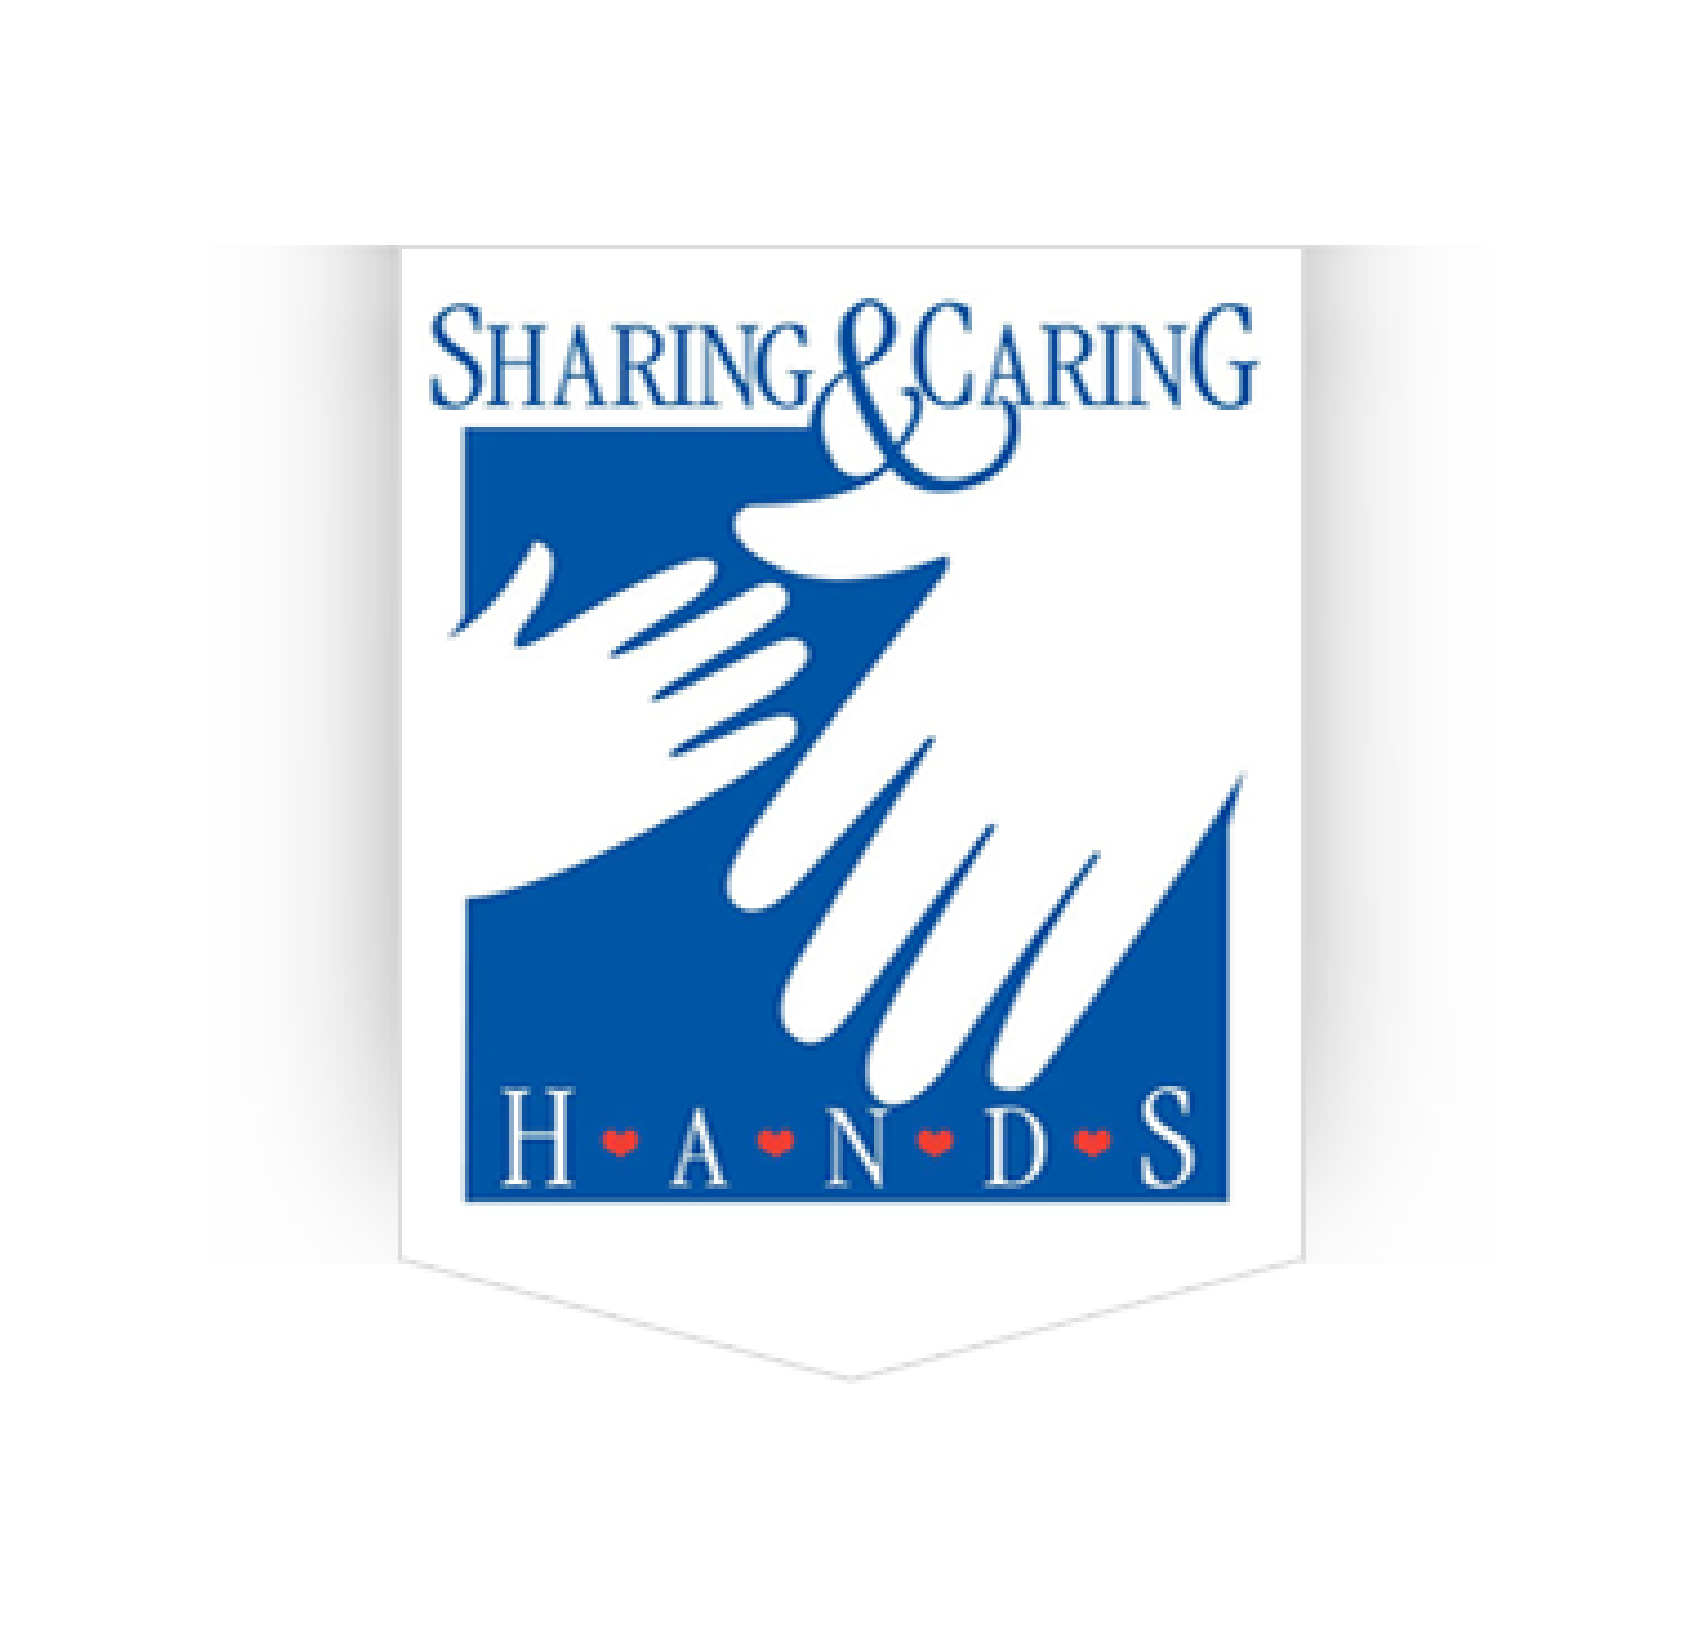 Sharing & Caring Hands - Hands is dedicated to helping the poor with what ever they need. Their services include but are not limited to  providing meals, clothing, showers, shelter, transportation help, rent deposits, rent help, medical assistance, dental care, furniture, school expenses, and other miscellaneous needs. MNGlow gave S&CH a donation of 40 beanies today!